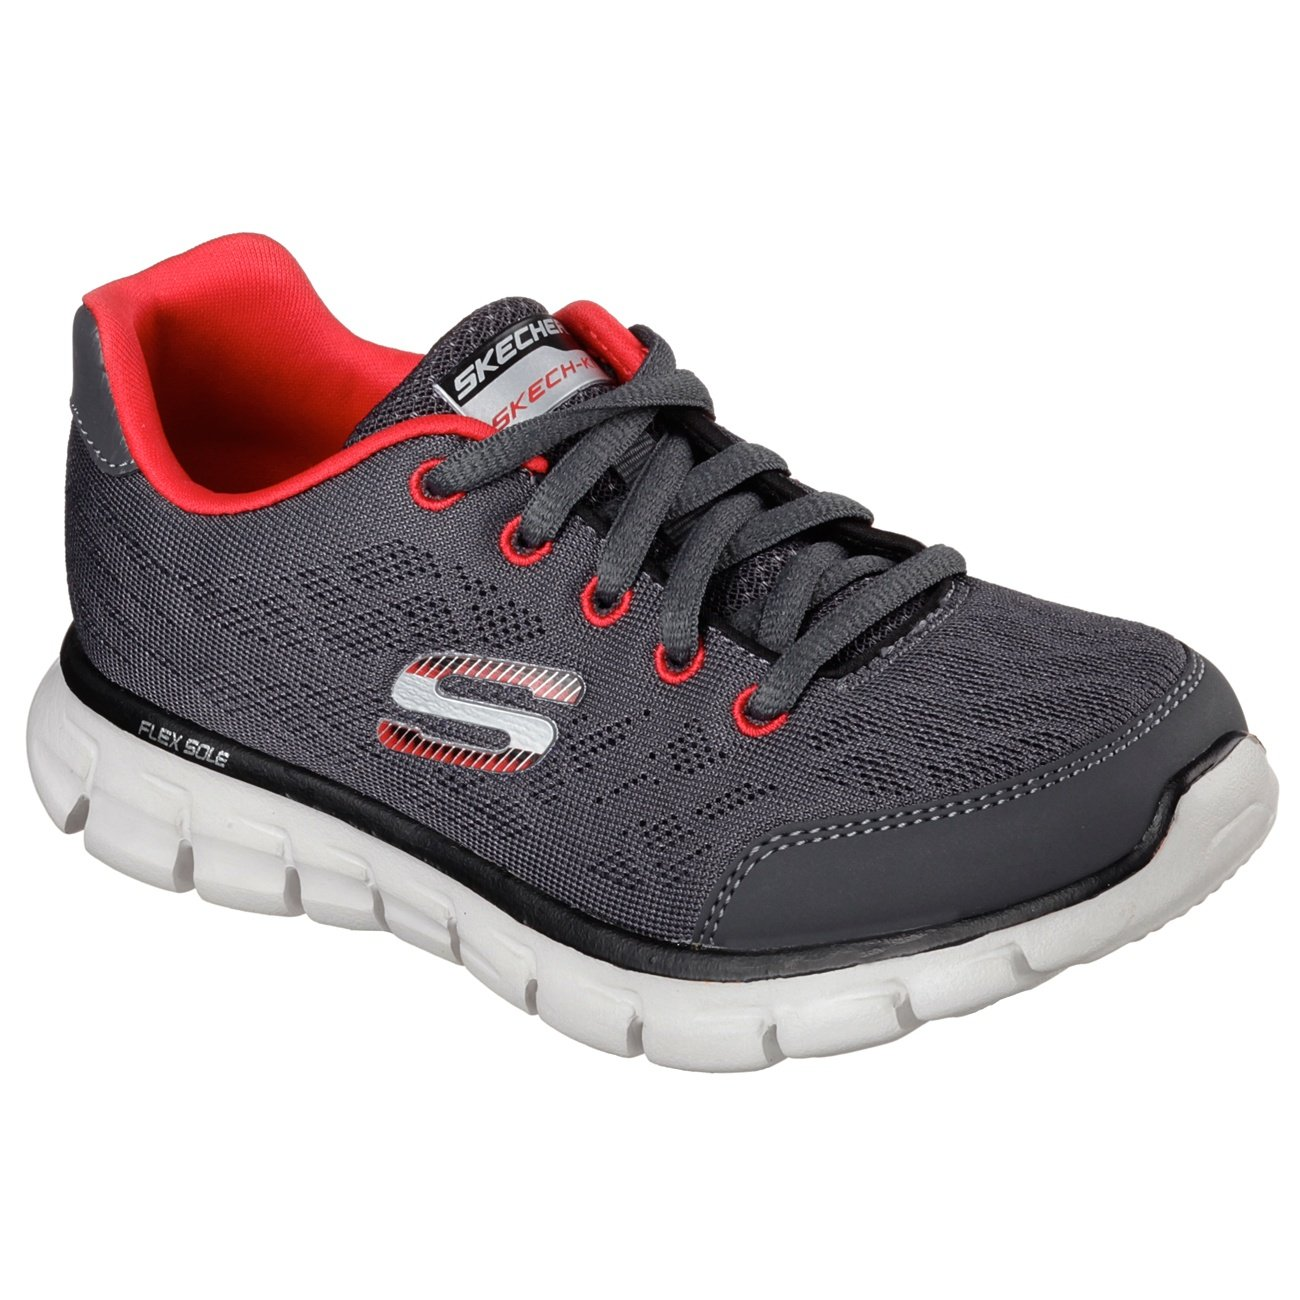 Skechers Childrens/Boys Synergy Fine Tune Lace Up Trainers/Sneakers (12.5 US Junior) (Gray/Red)